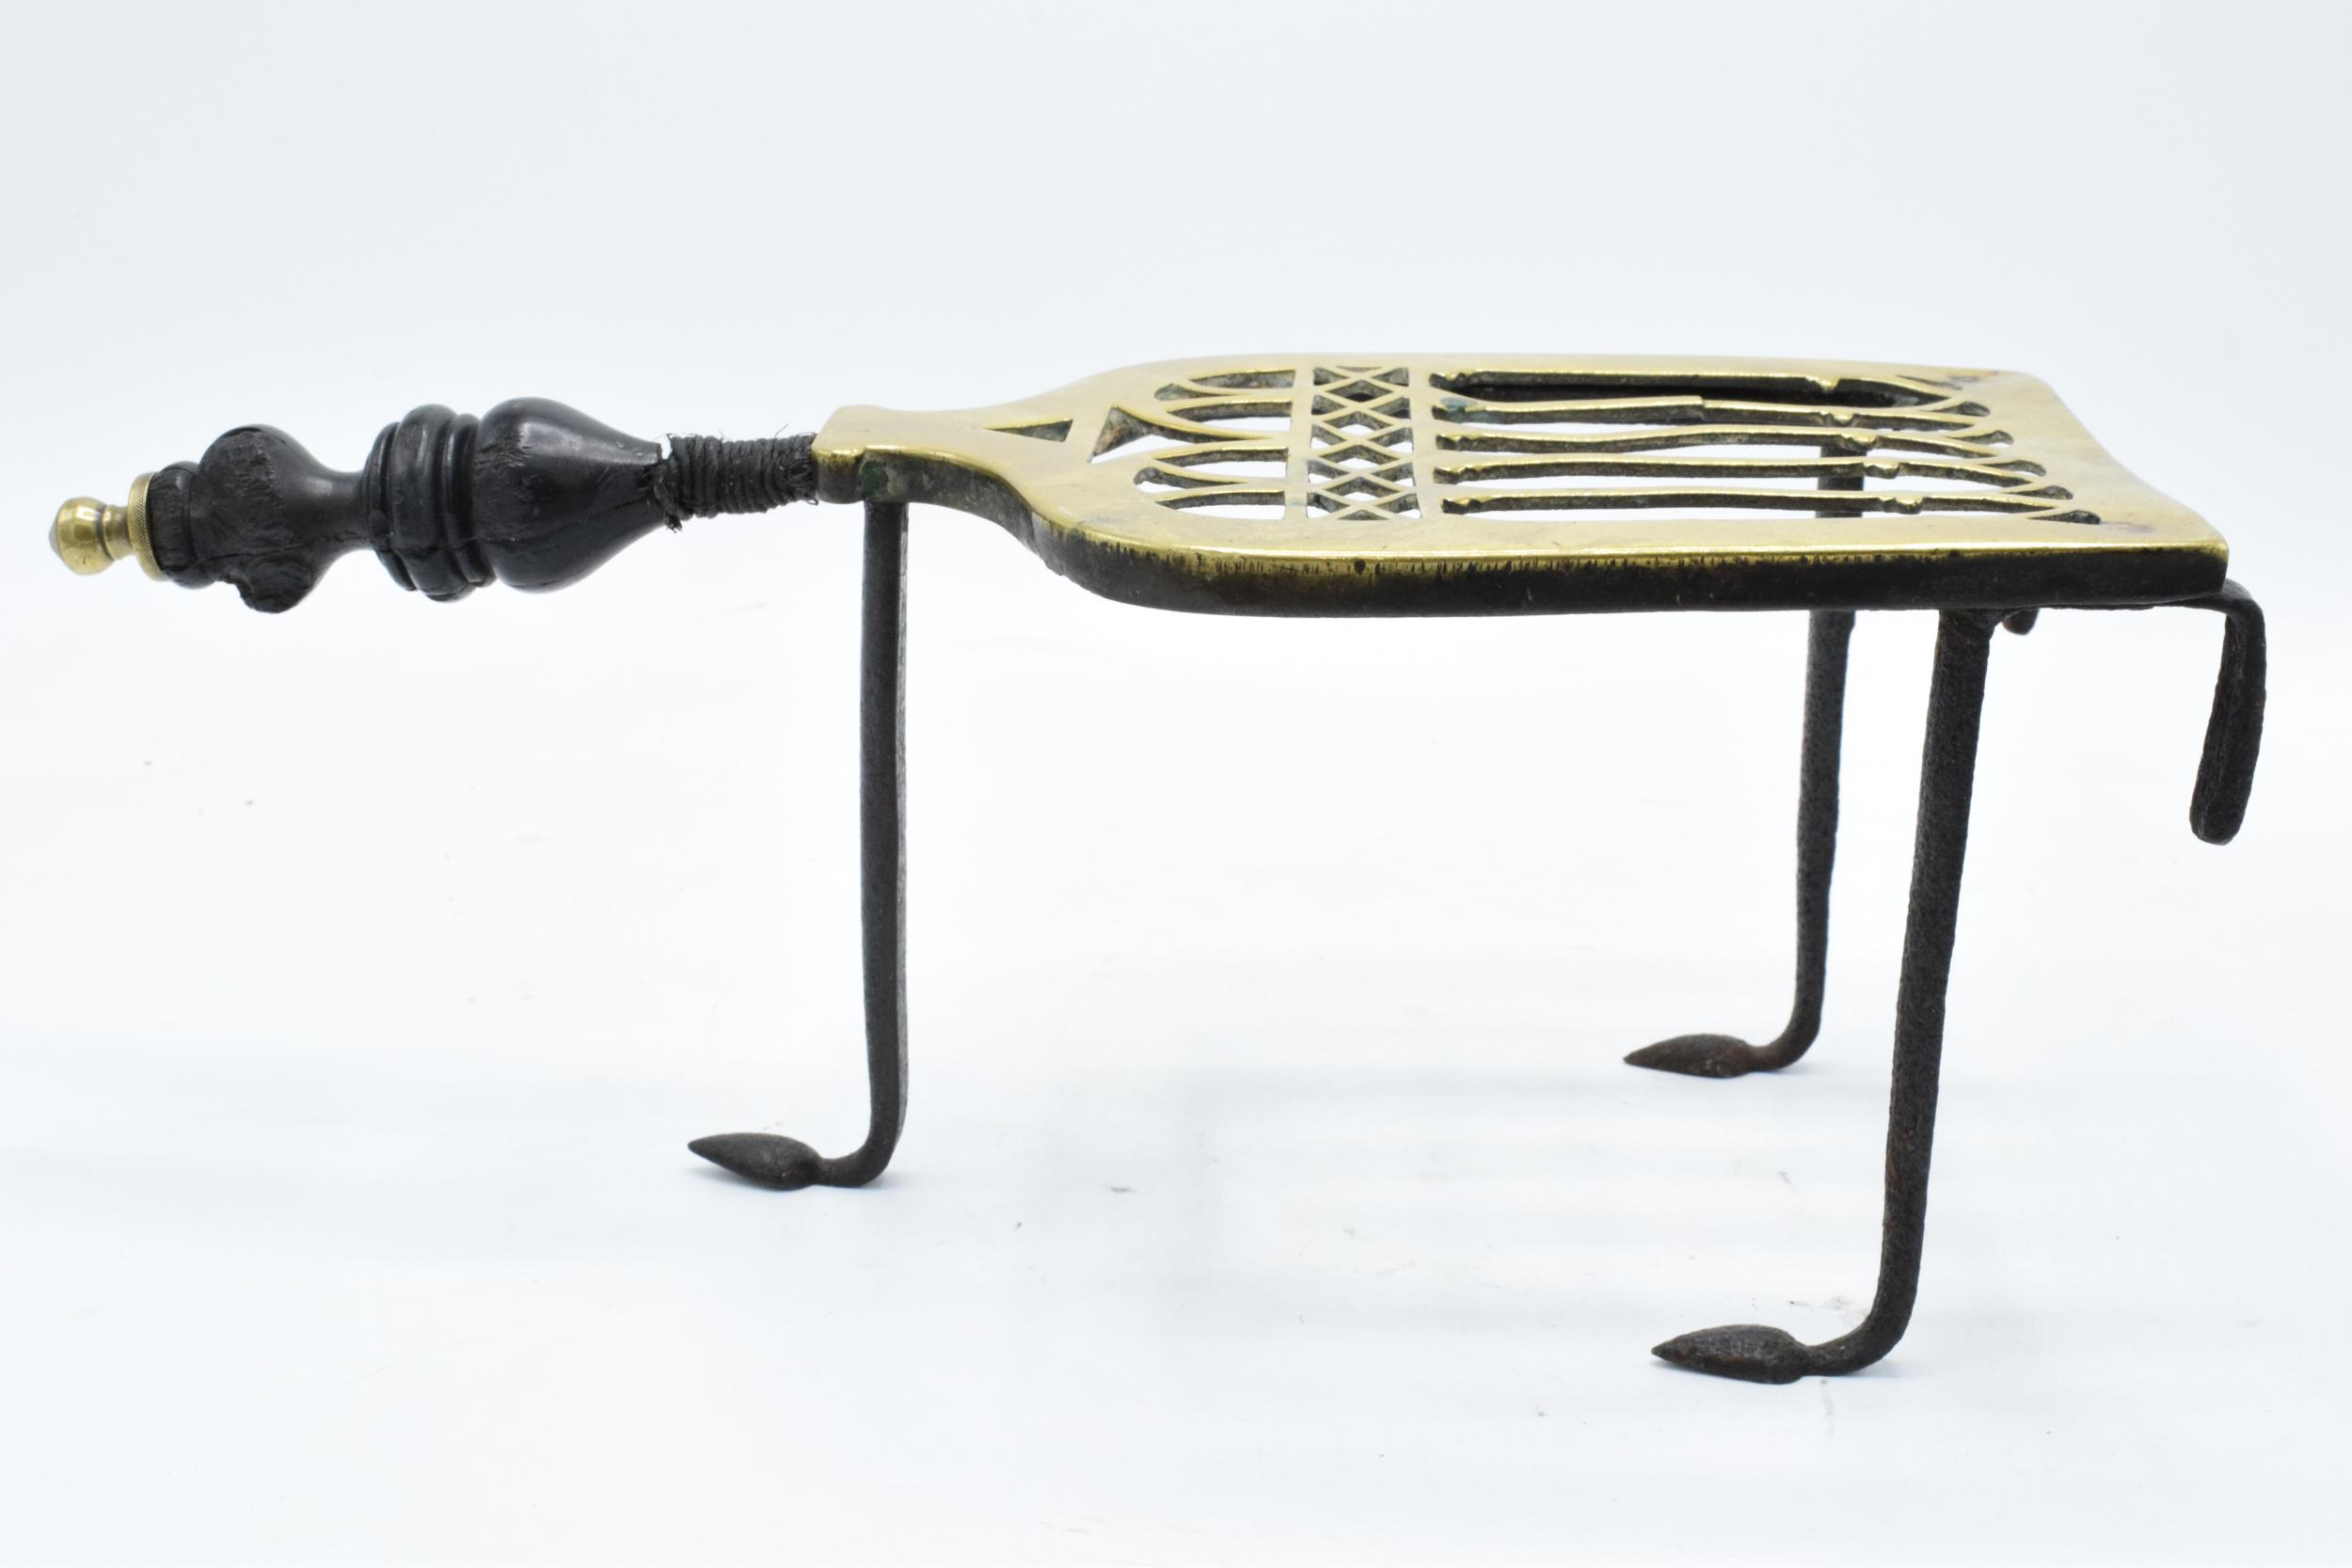 Victorian brass and iron trivet with wooden handle (some chipping to wood). - Image 5 of 6